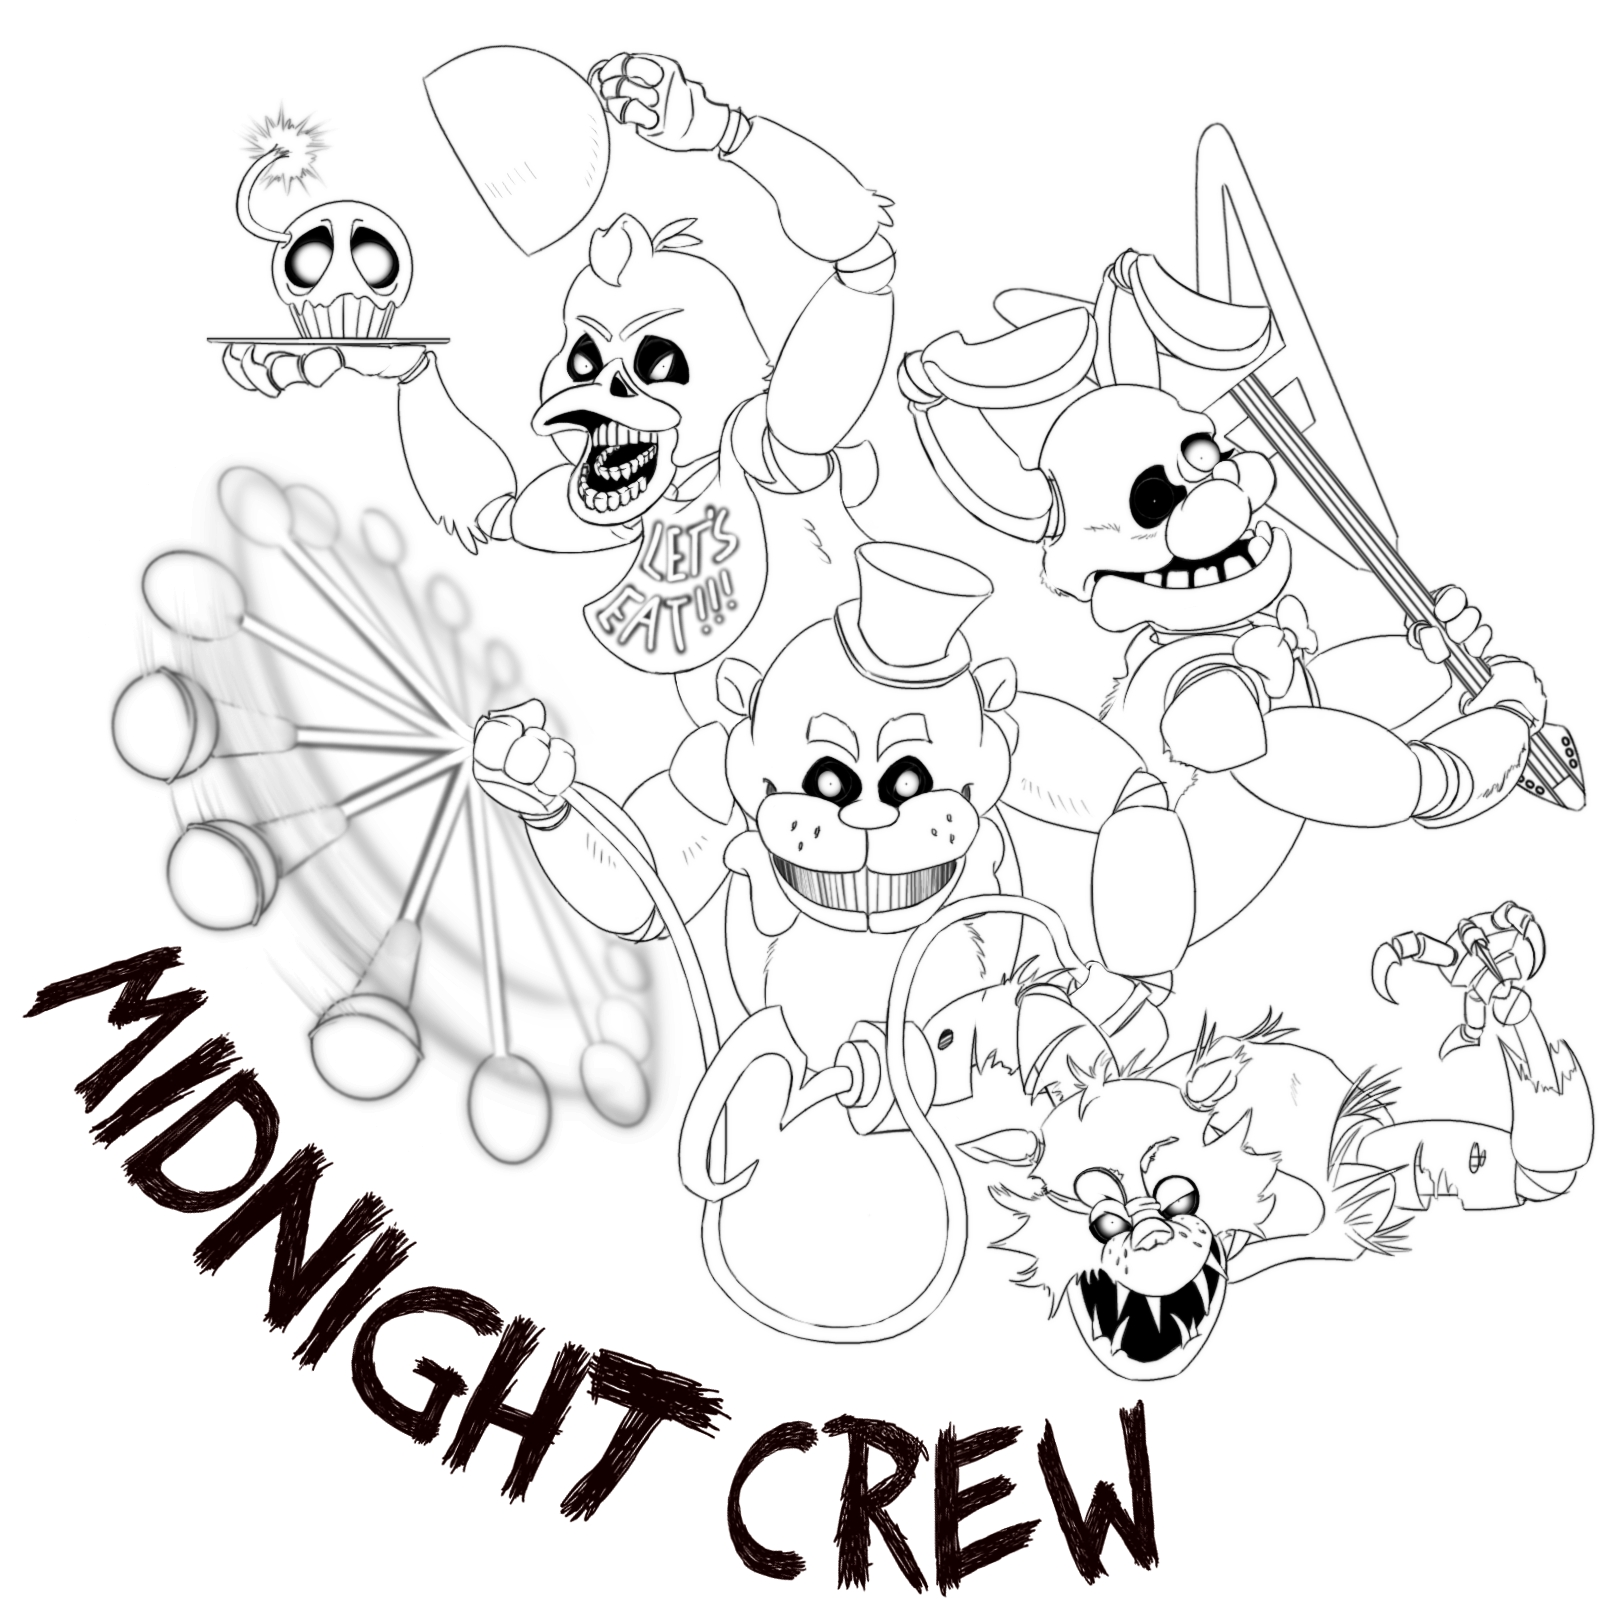 1620x1616 Expert Fnaf 4 Coloring Pages All Characters Dr